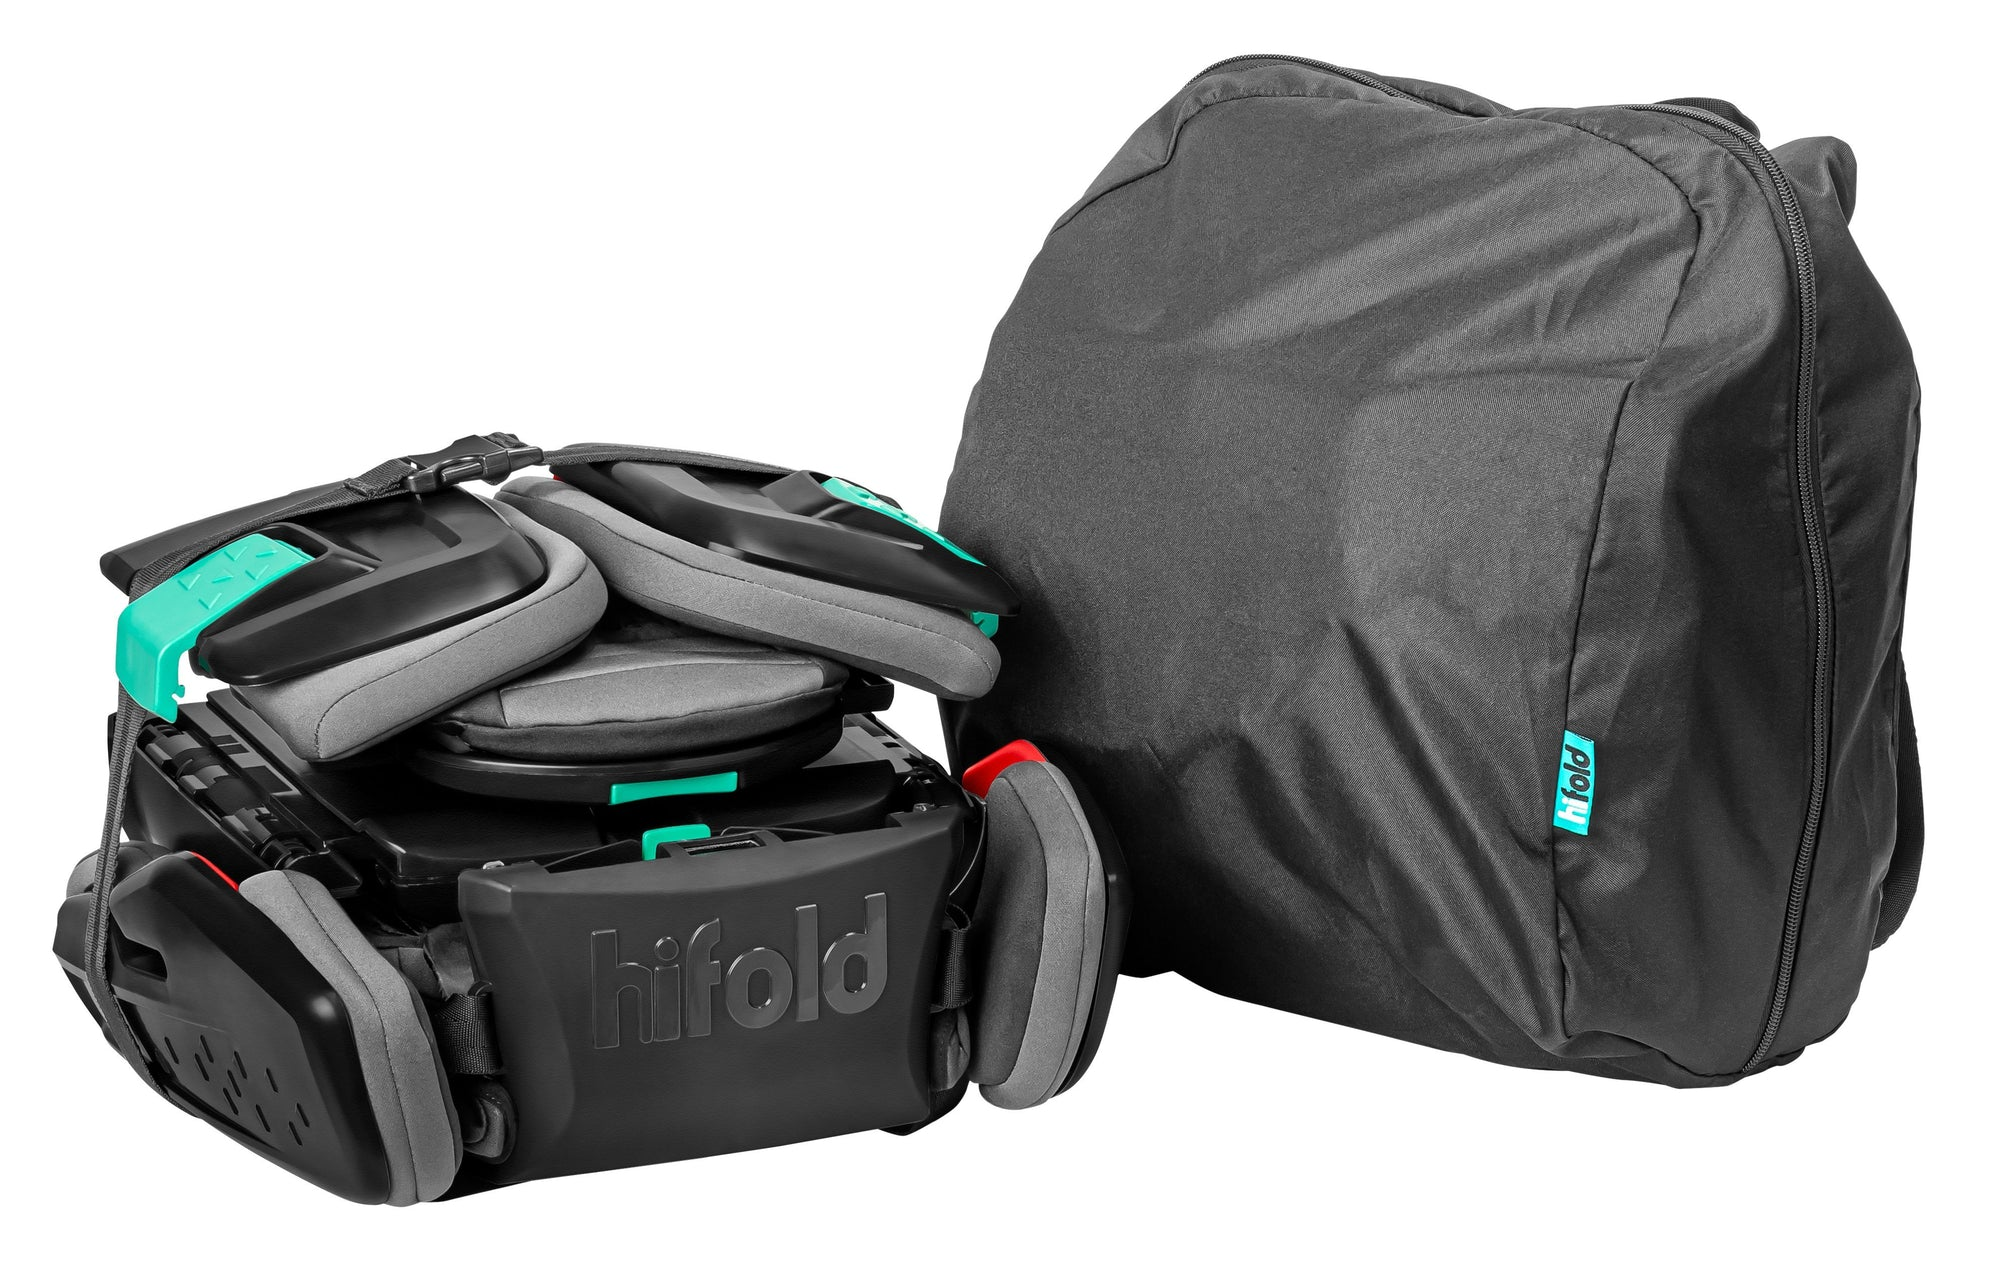 The hifold fit-and-fold booster storage bag - mifold